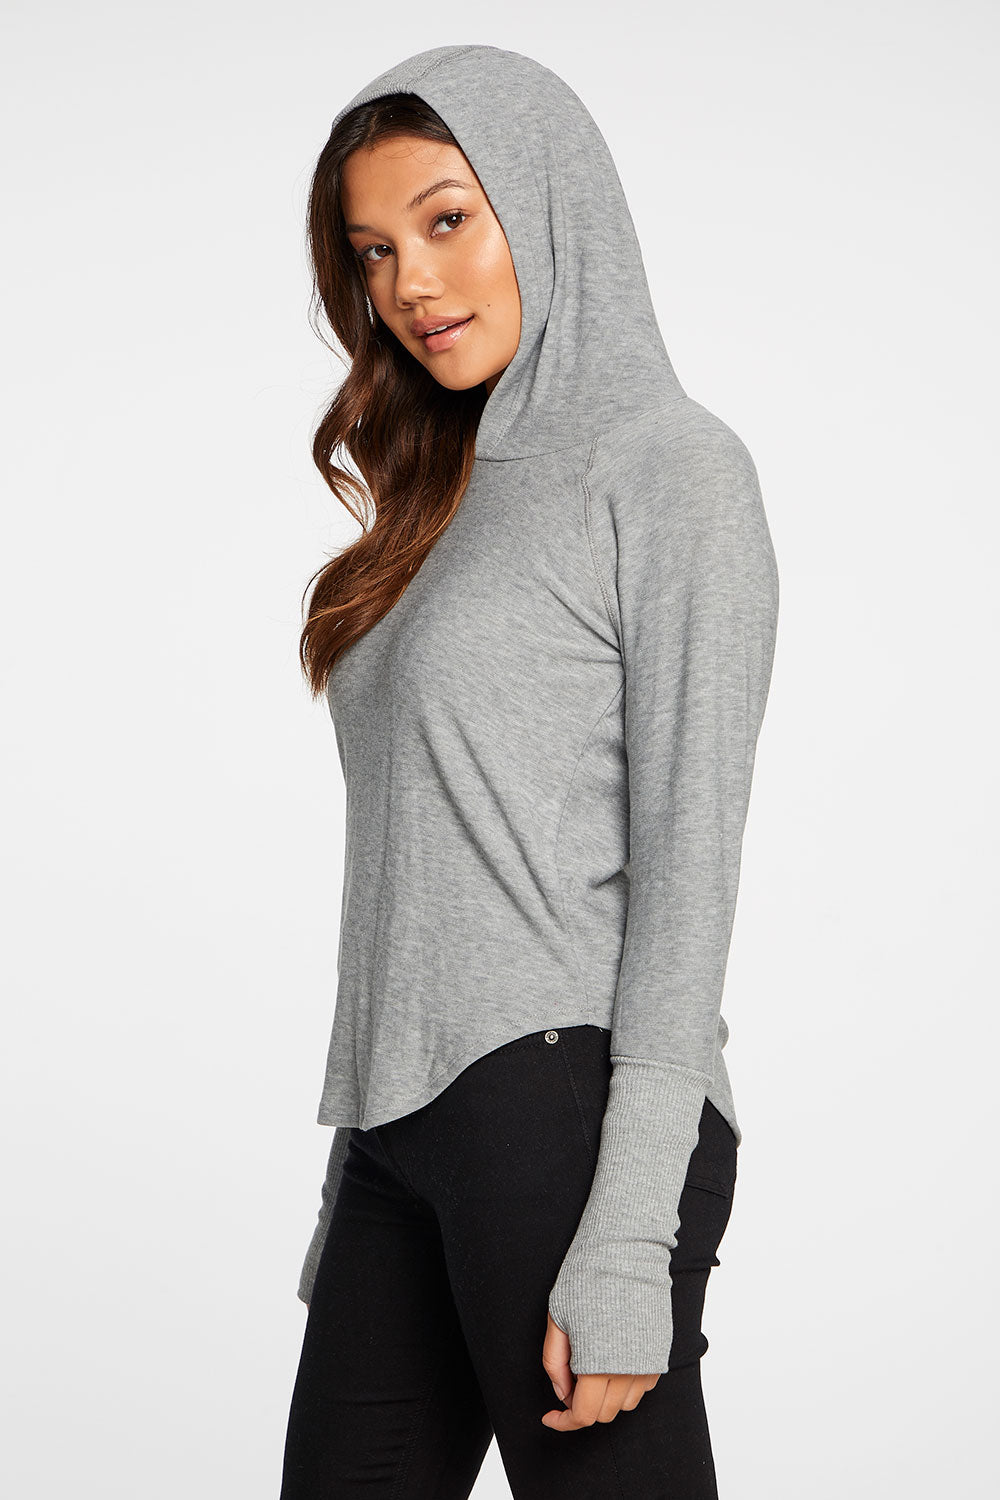 Cozy Knit Thumbhole Raglan Pullover Shirttail Hoodie in Heather Grey WOMENS chaserbrand4.myshopify.com